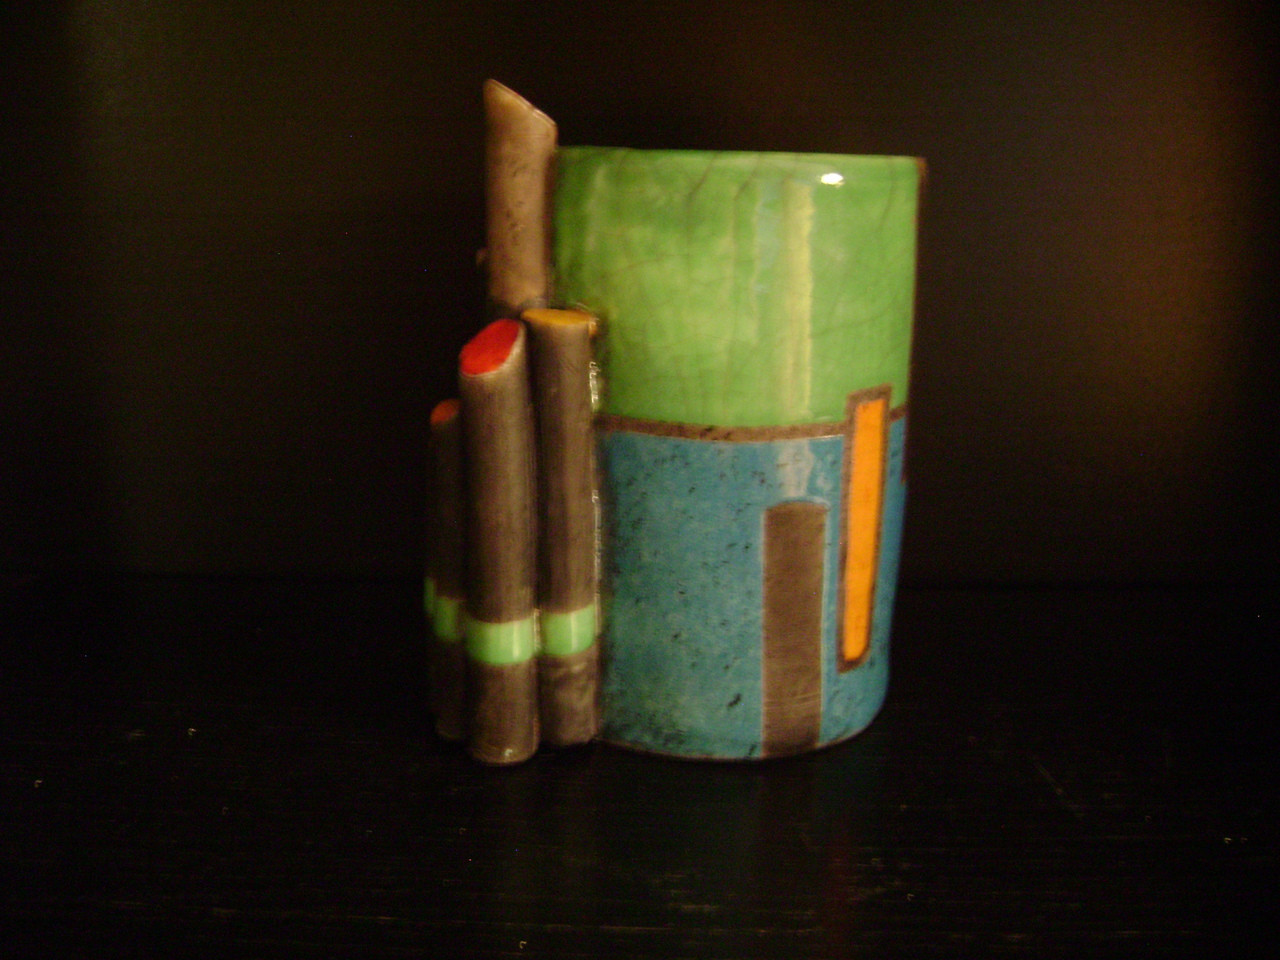 Tamara S Gordon Ceramics.  Dockside Pot